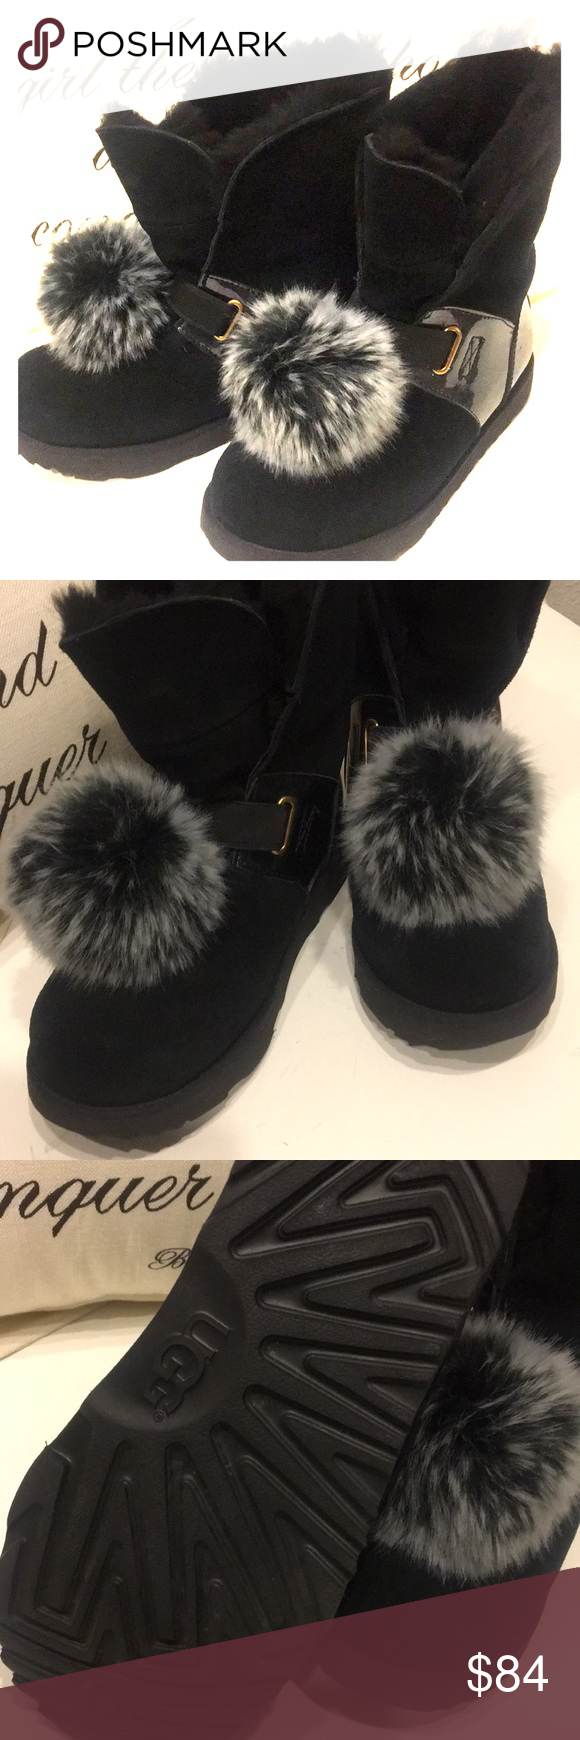 d8fdf6d1bd3 UGG Girls Black Boot with Detachable Fluff ball UGG Girls Isley ...